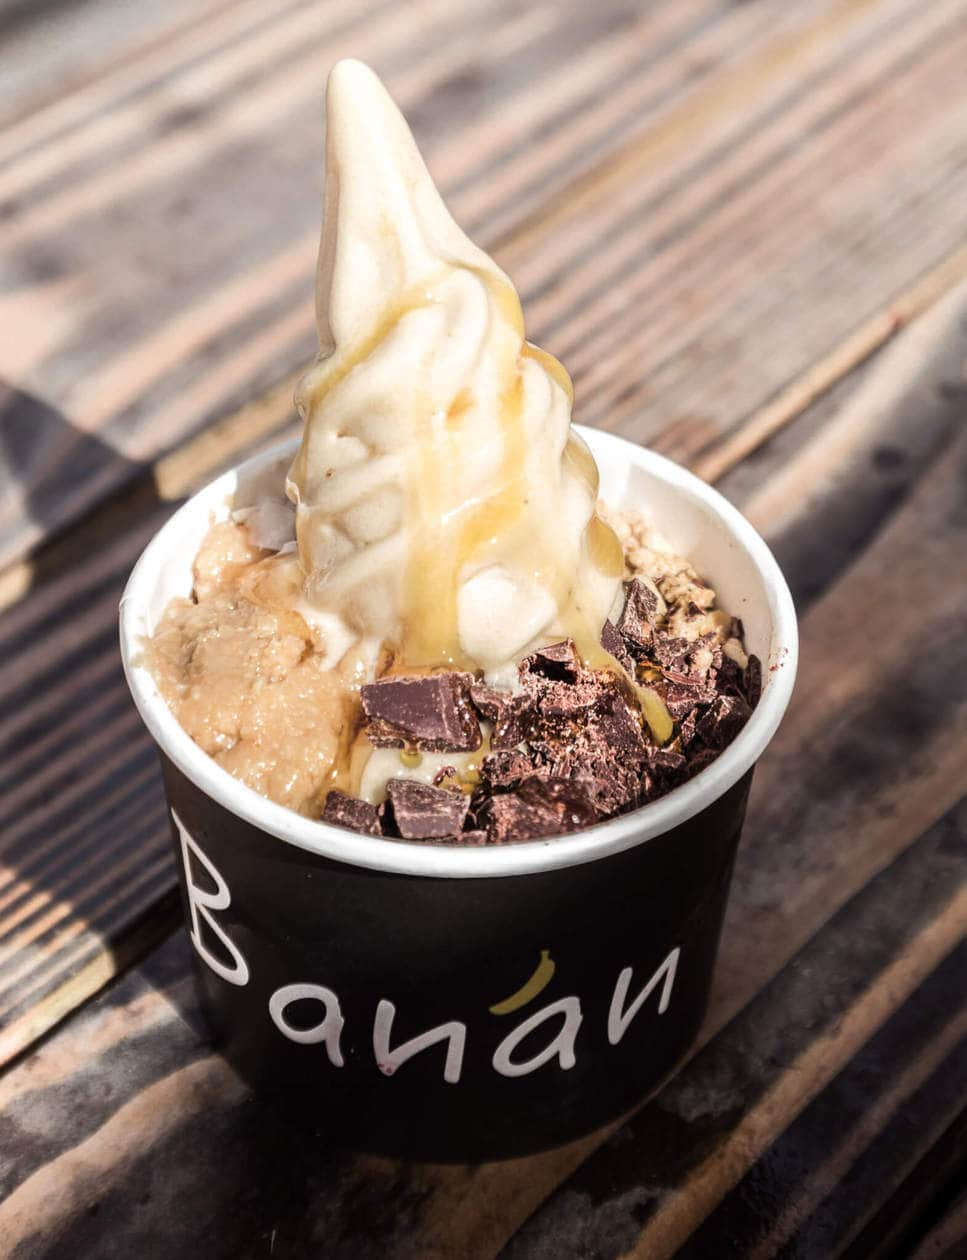 Banan Soft Serve // From locally sourced (instagrammable) banana soft serve, to a hole in the wall deli serving up the best kimchee pancakes. Discover where to find the best pizza and poke in Oahu, and the best breakfast in Waikiki. Keep reading for 6 of the best off the beaten path places to eat in Oahu.